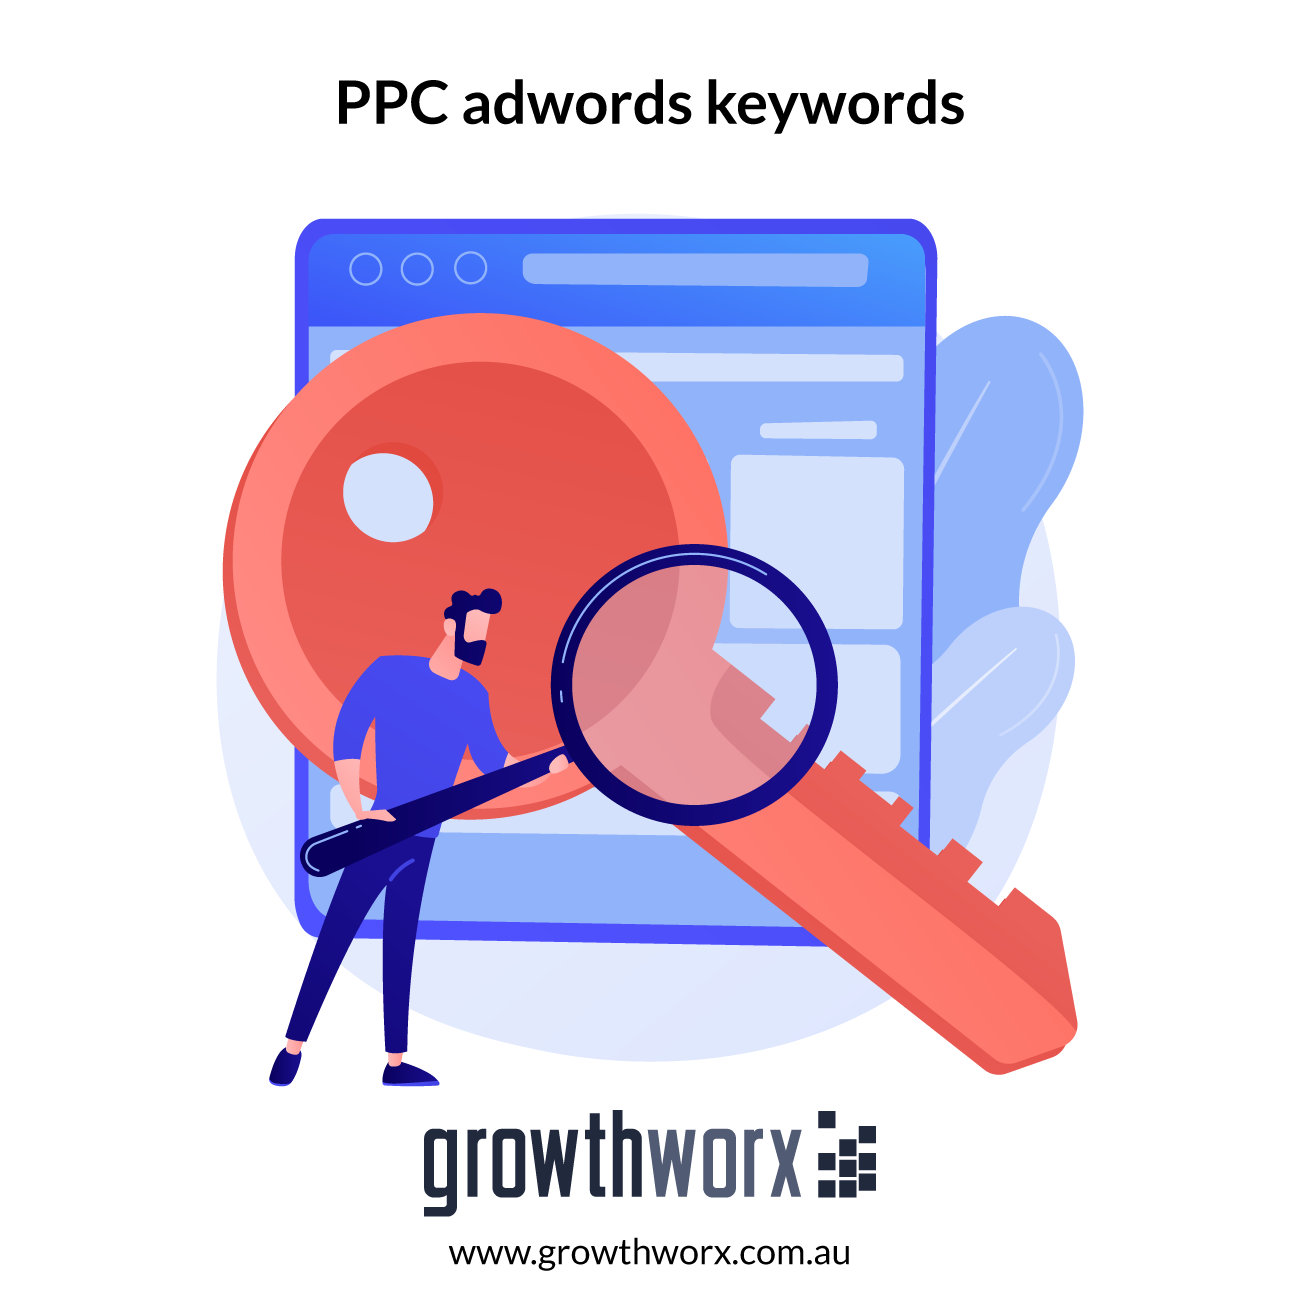 I will provide PPC adwords keywords of 10 competitor websites 1